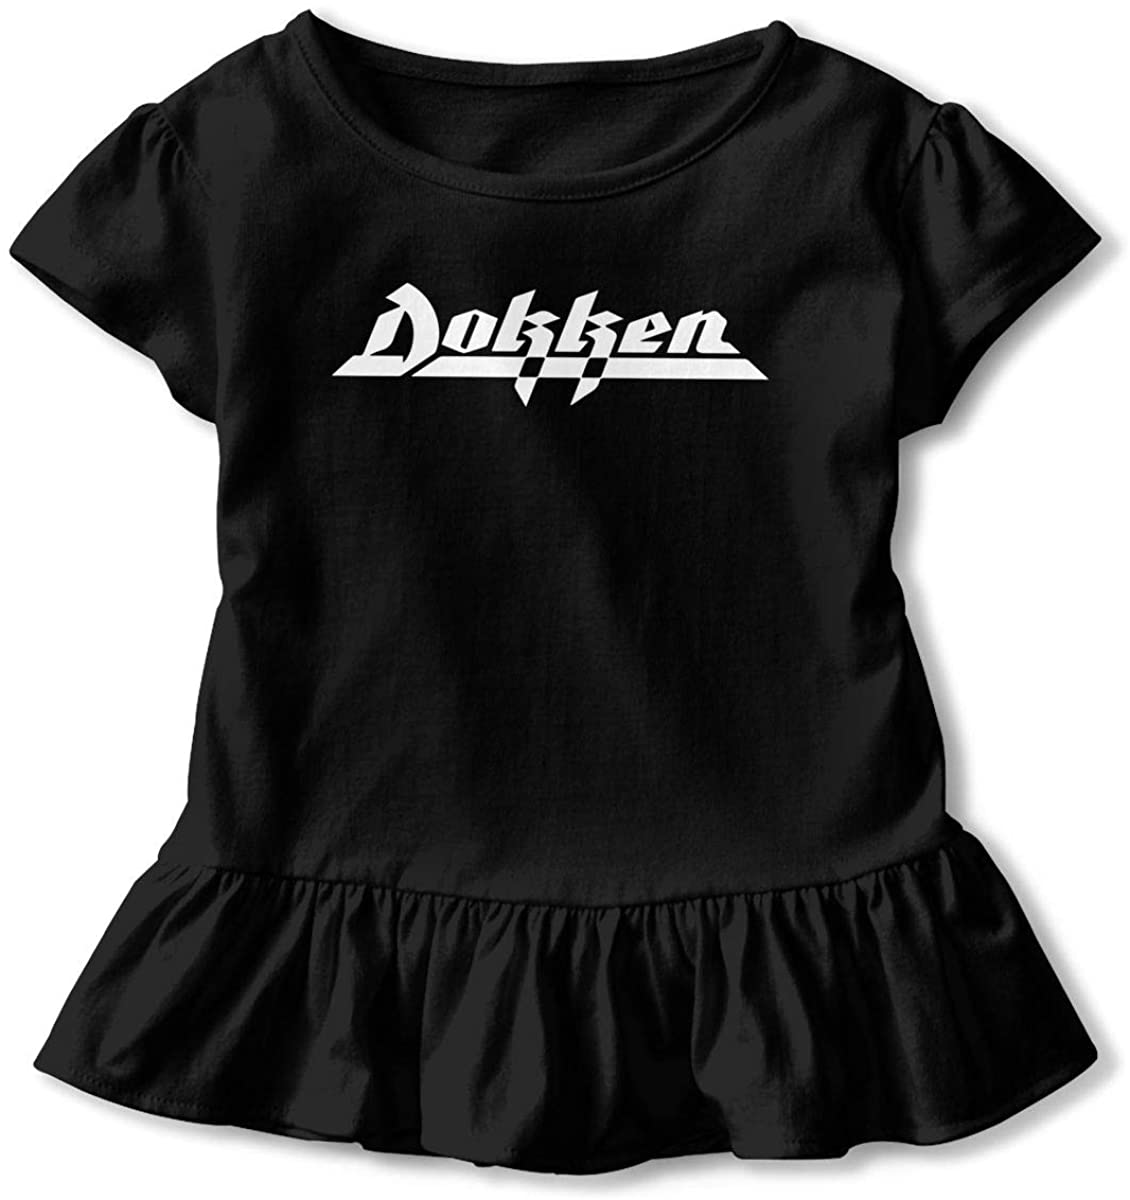 AHUAHUA Kids Dokken Logo Toddler Short Sleeve T Shirt Children Girls Cotton Graphic Tee Soft Dress (2-6T)